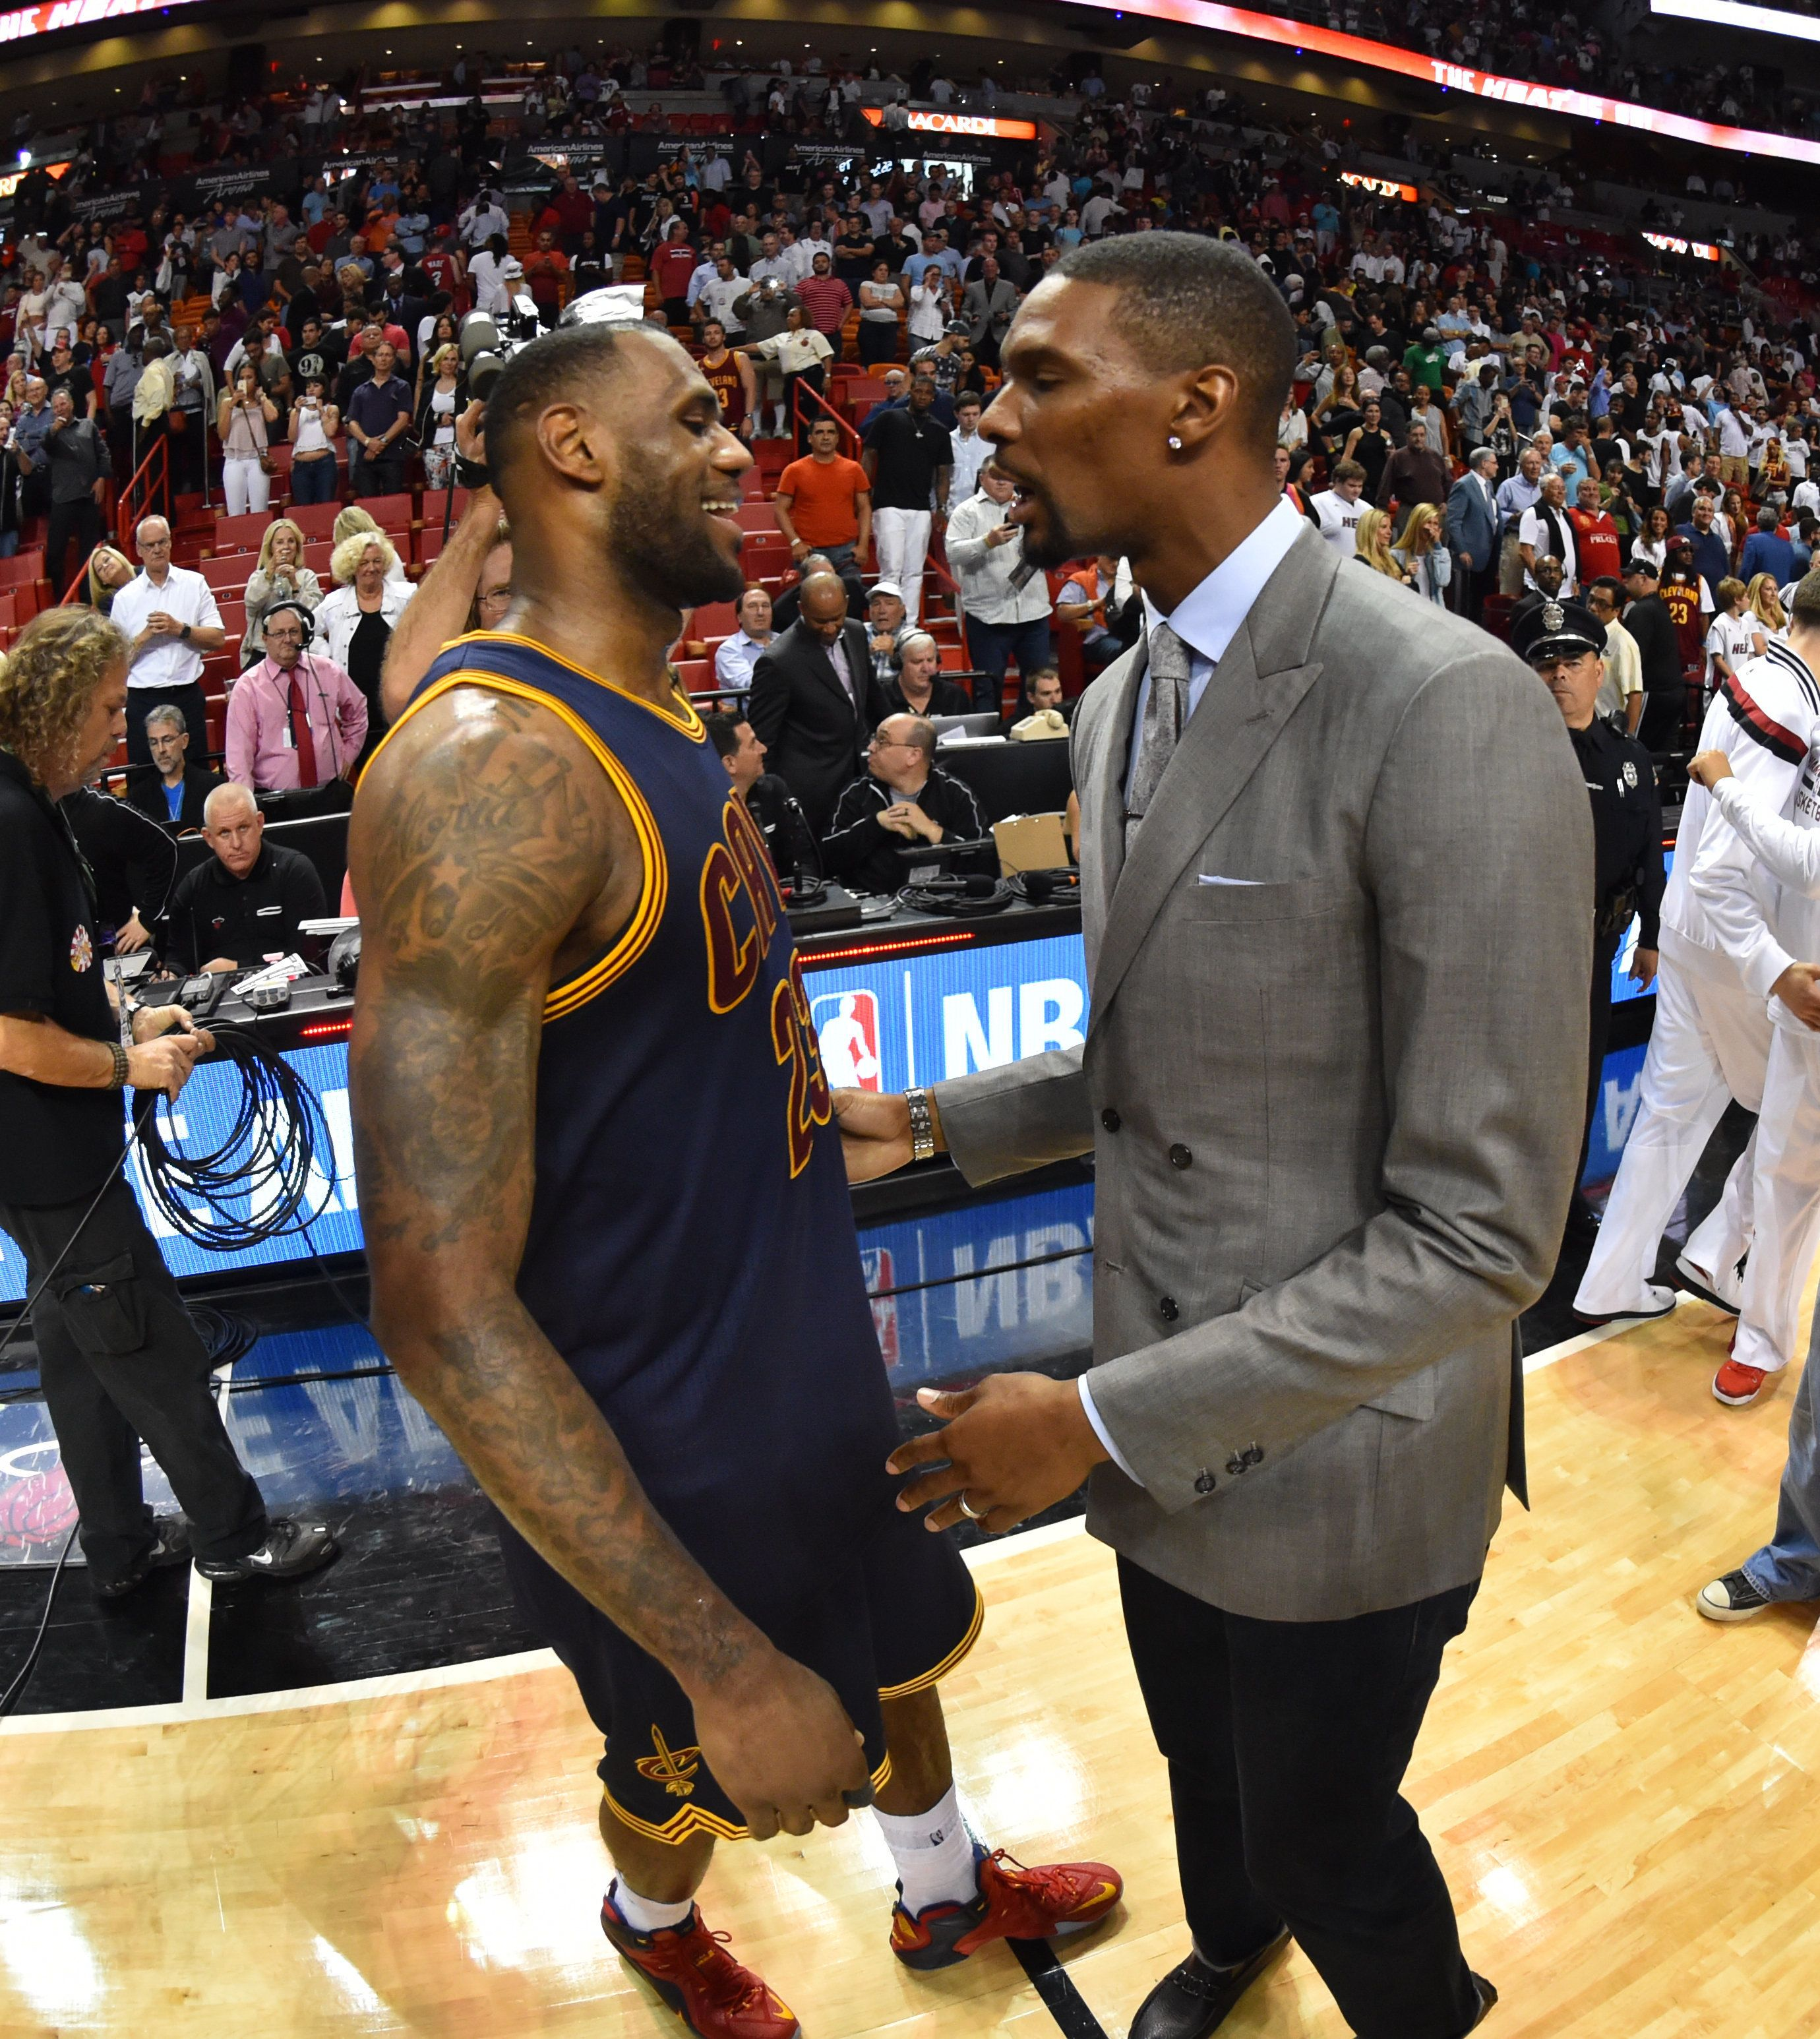 MIAMI  - MARCH 16:  LeBron James #23 of Cleveland Cavaliers greets former teammate Chris Bosh #1 after the game against the Miami Heat at the American Airlines Arena on March 16, 2015 in Miami , Florida. NOTE TO USER: User expressly acknowledges and agrees that, by downloading and or using this photograph, User is consenting to the terms and conditions of the Getty Images License Agreement. Mandatory Copyright Notice: Copyright 2015 NBAE  (Photo by Jesse D. Garrabrant / NBAE via Getty Images)